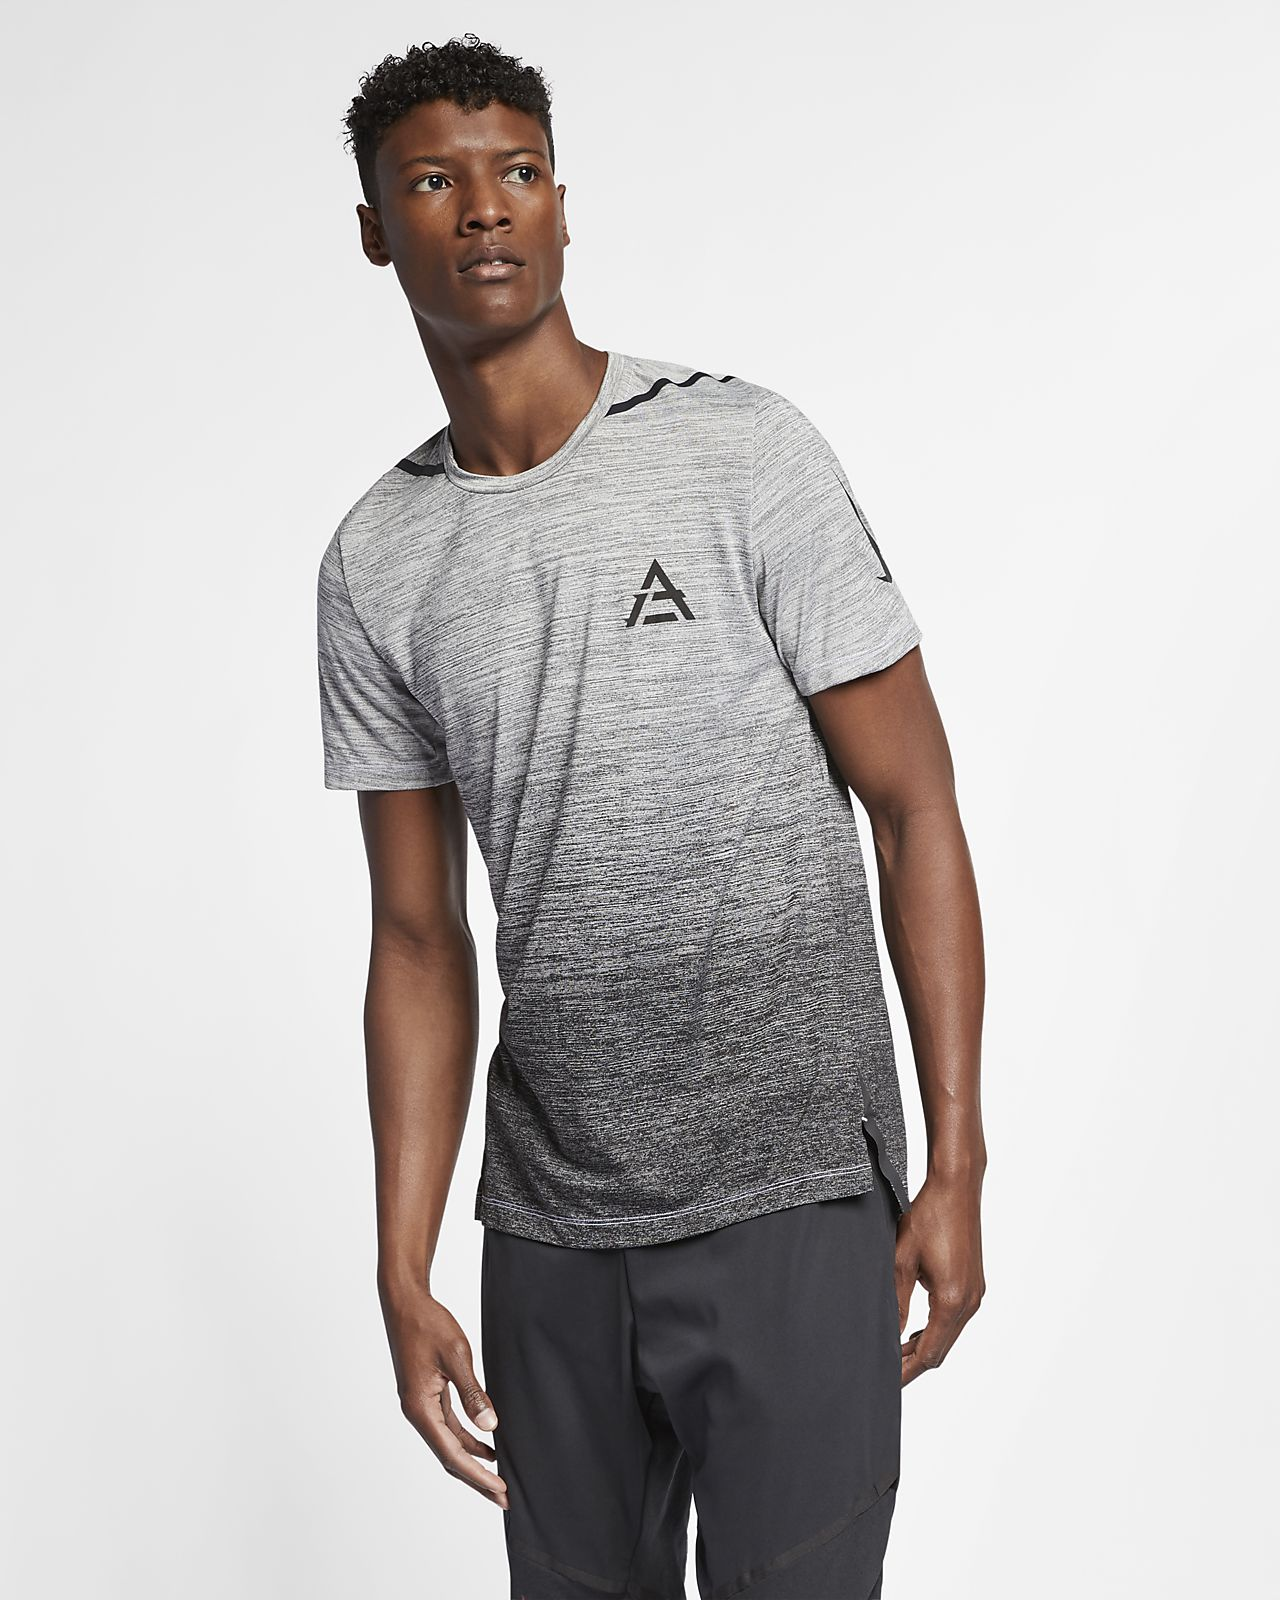 a662328be59aac Nike Dri-FIT Adonis Creed Men s Short-Sleeve Training Top. Nike.com